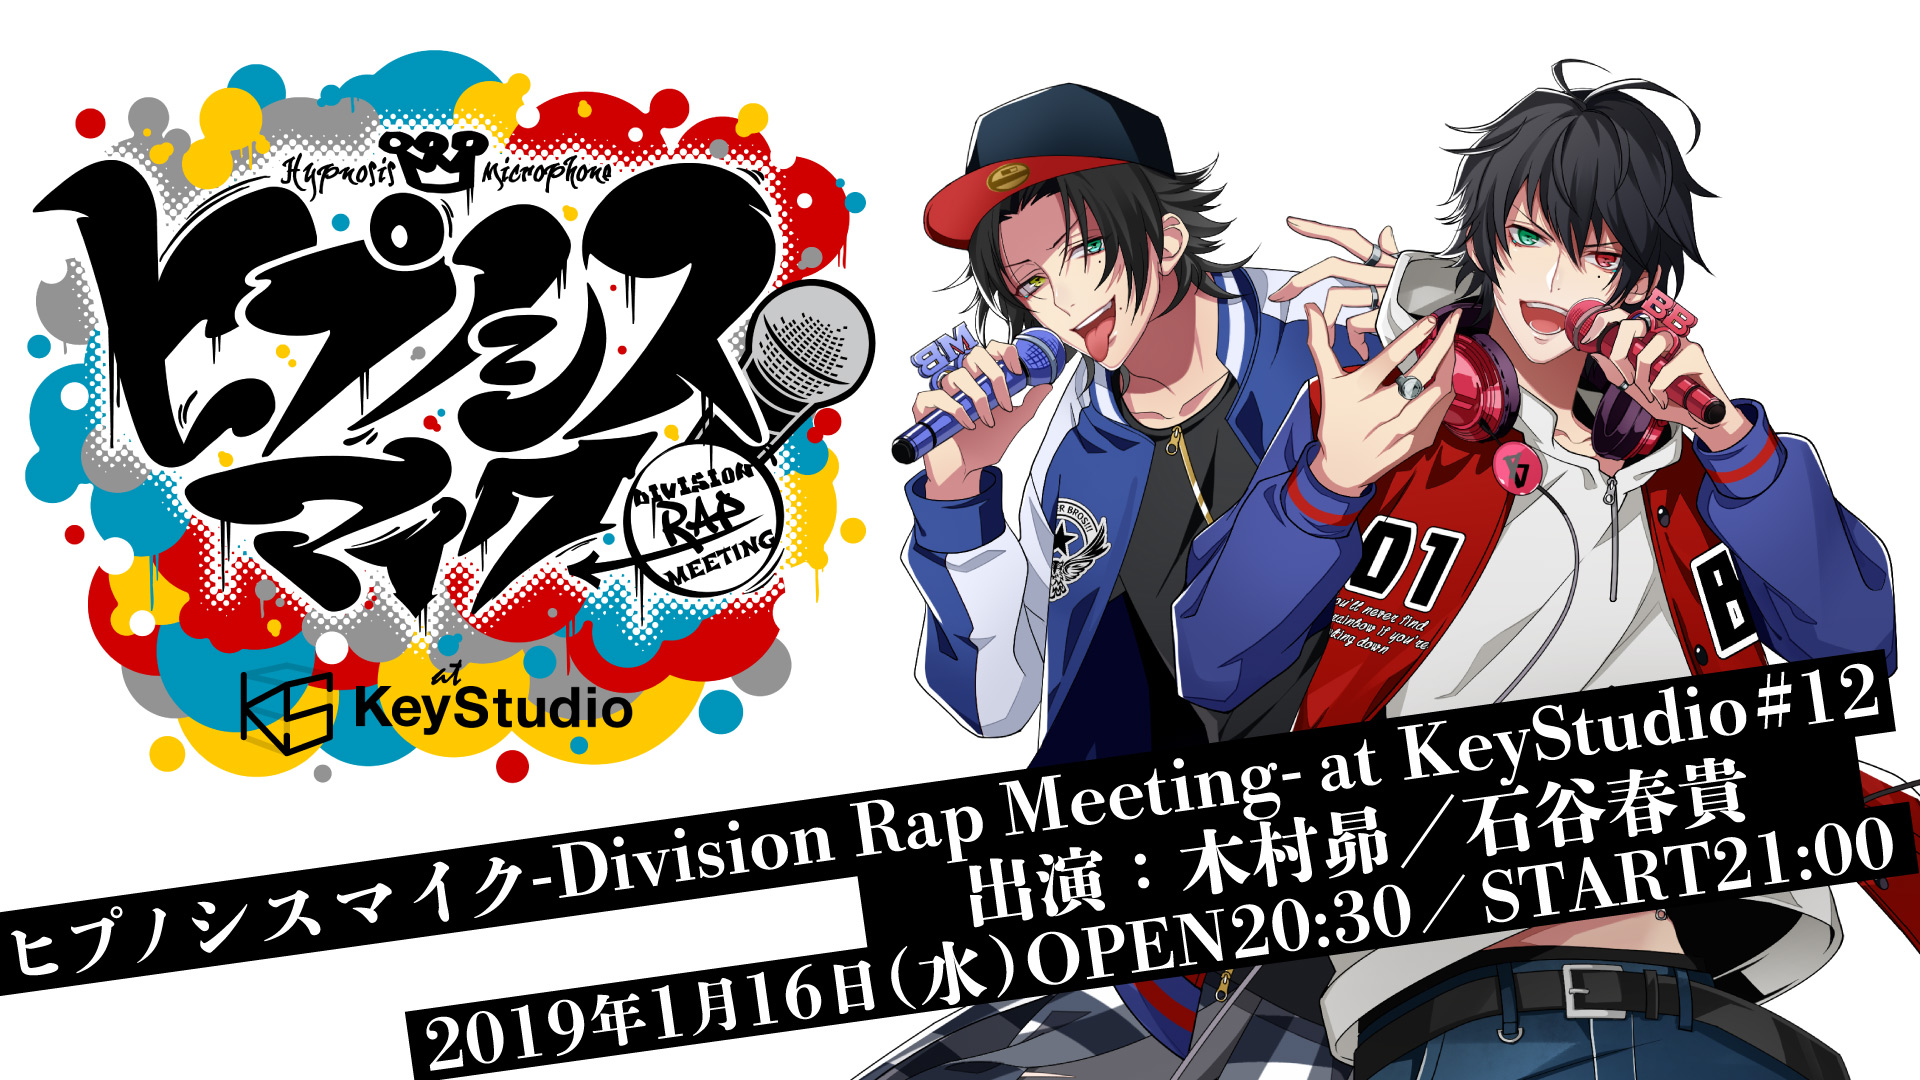 ヒプノシスマイク -Division Rap Meeting- at KeyStudio #12